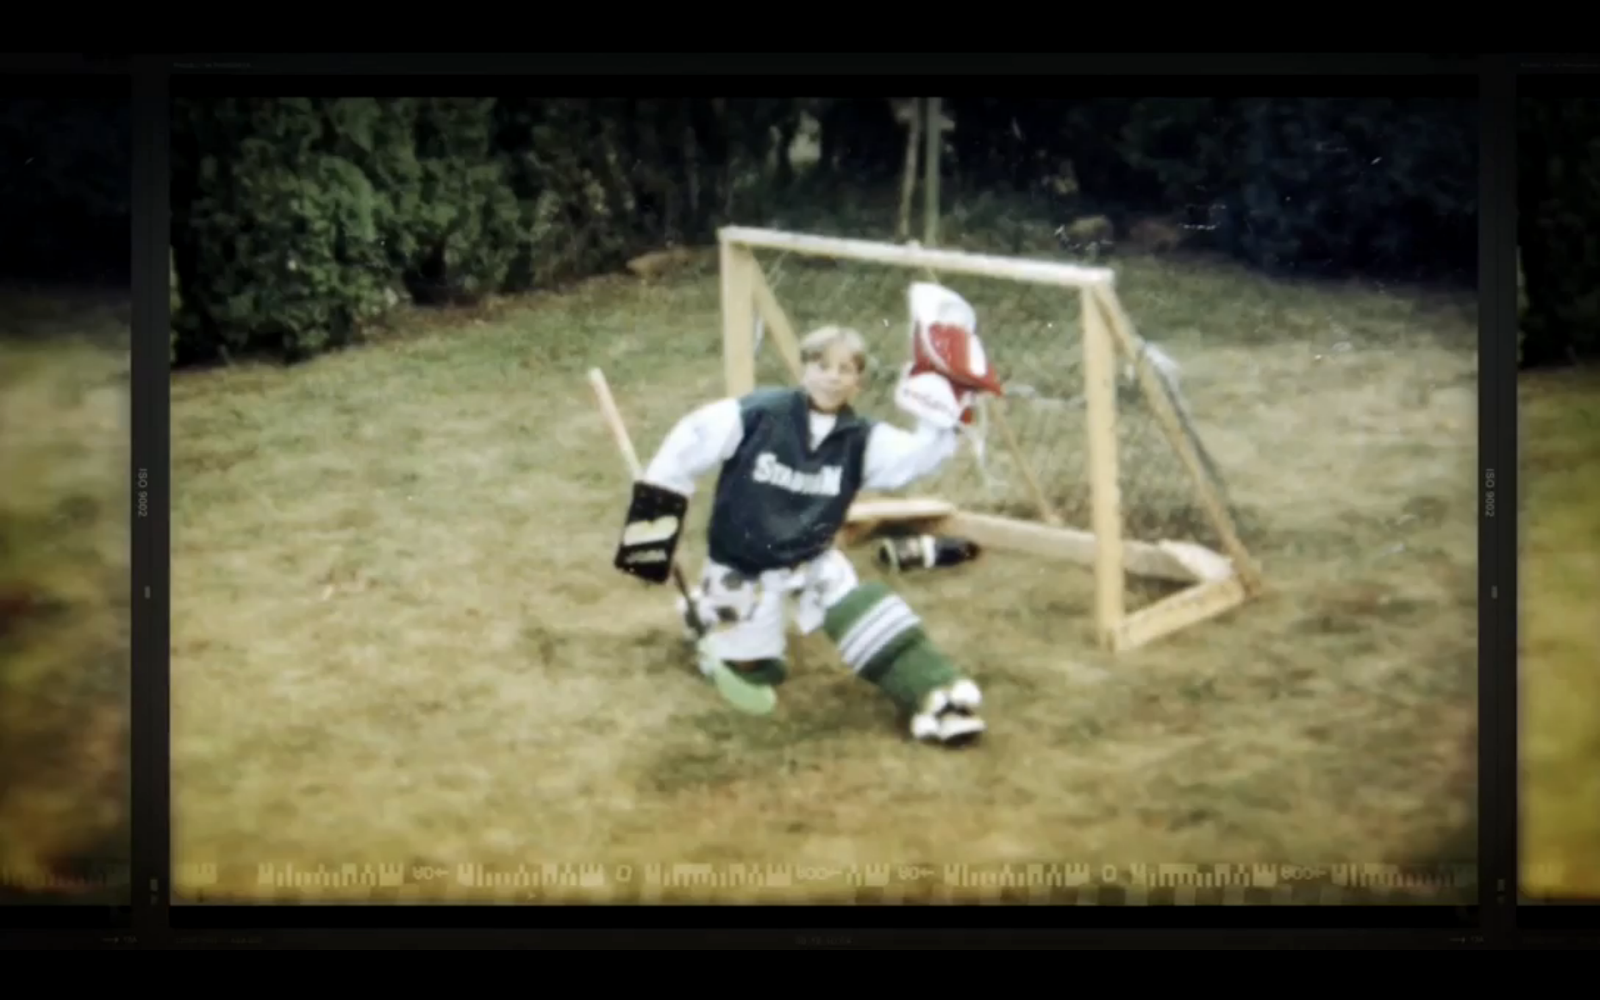 The Henrik Lundqvist Blog Watch The Full Episode Of Becoming